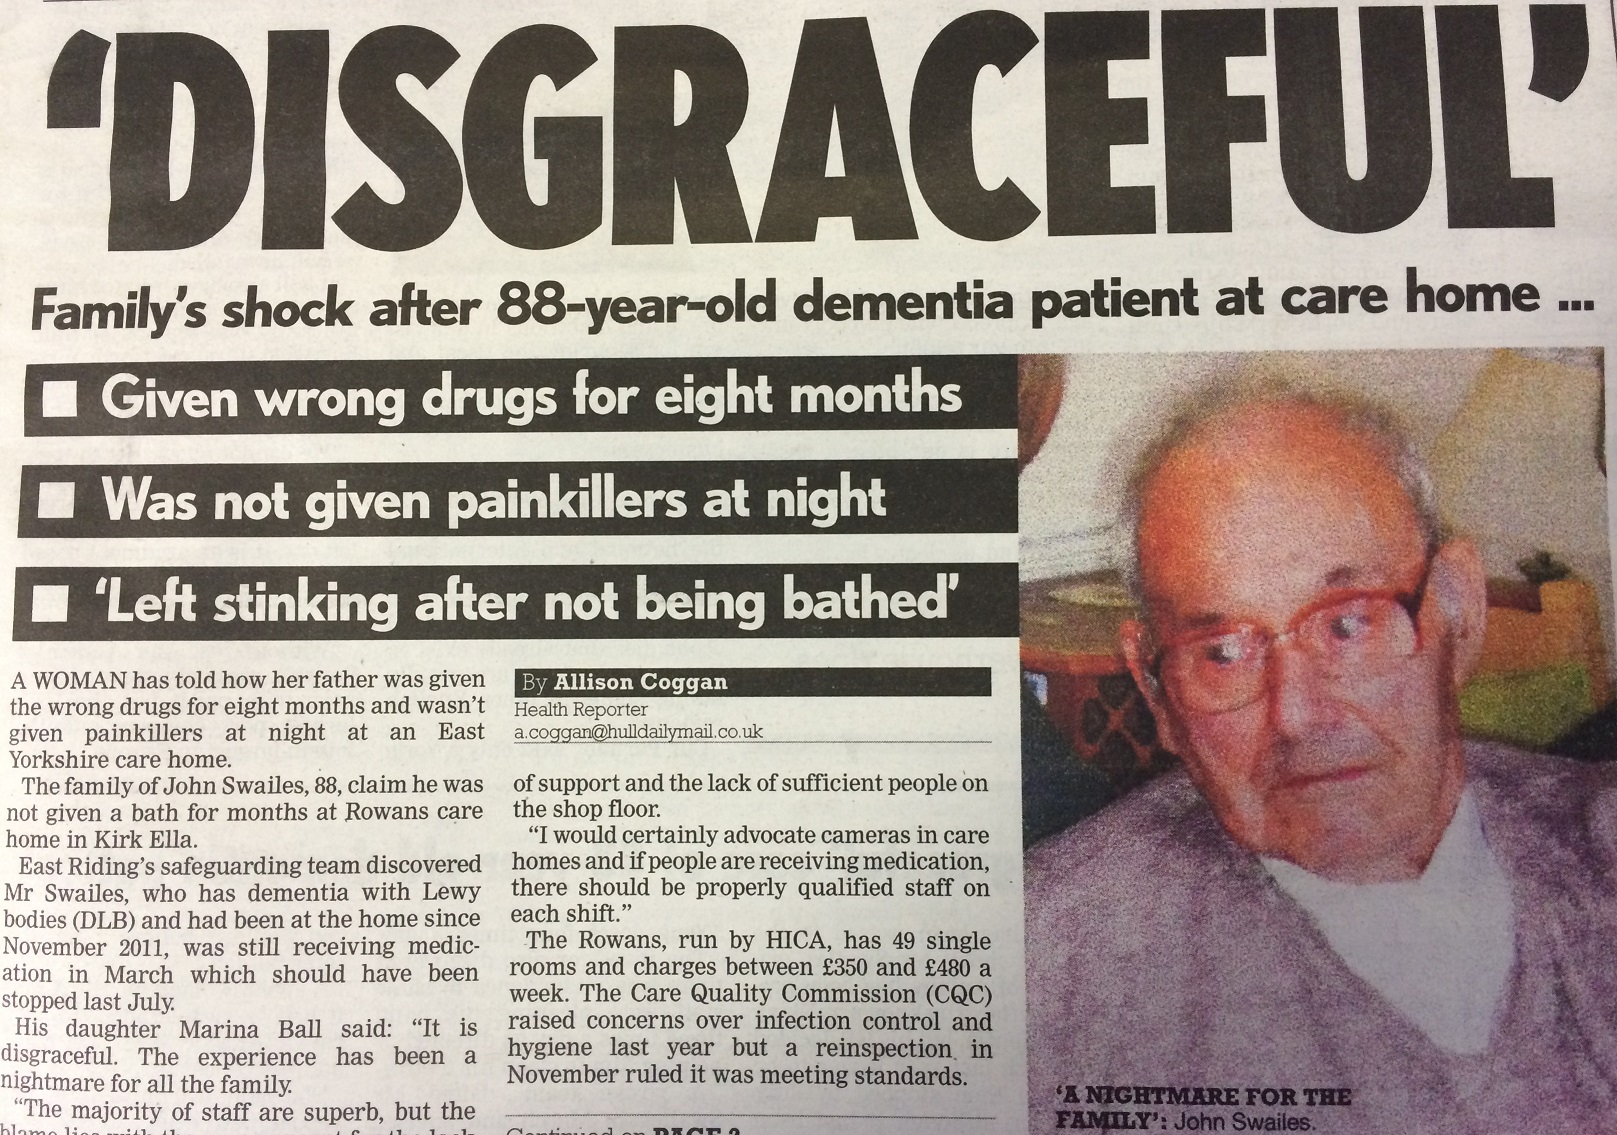 No excuses for care homes failing to provide basic standards of care